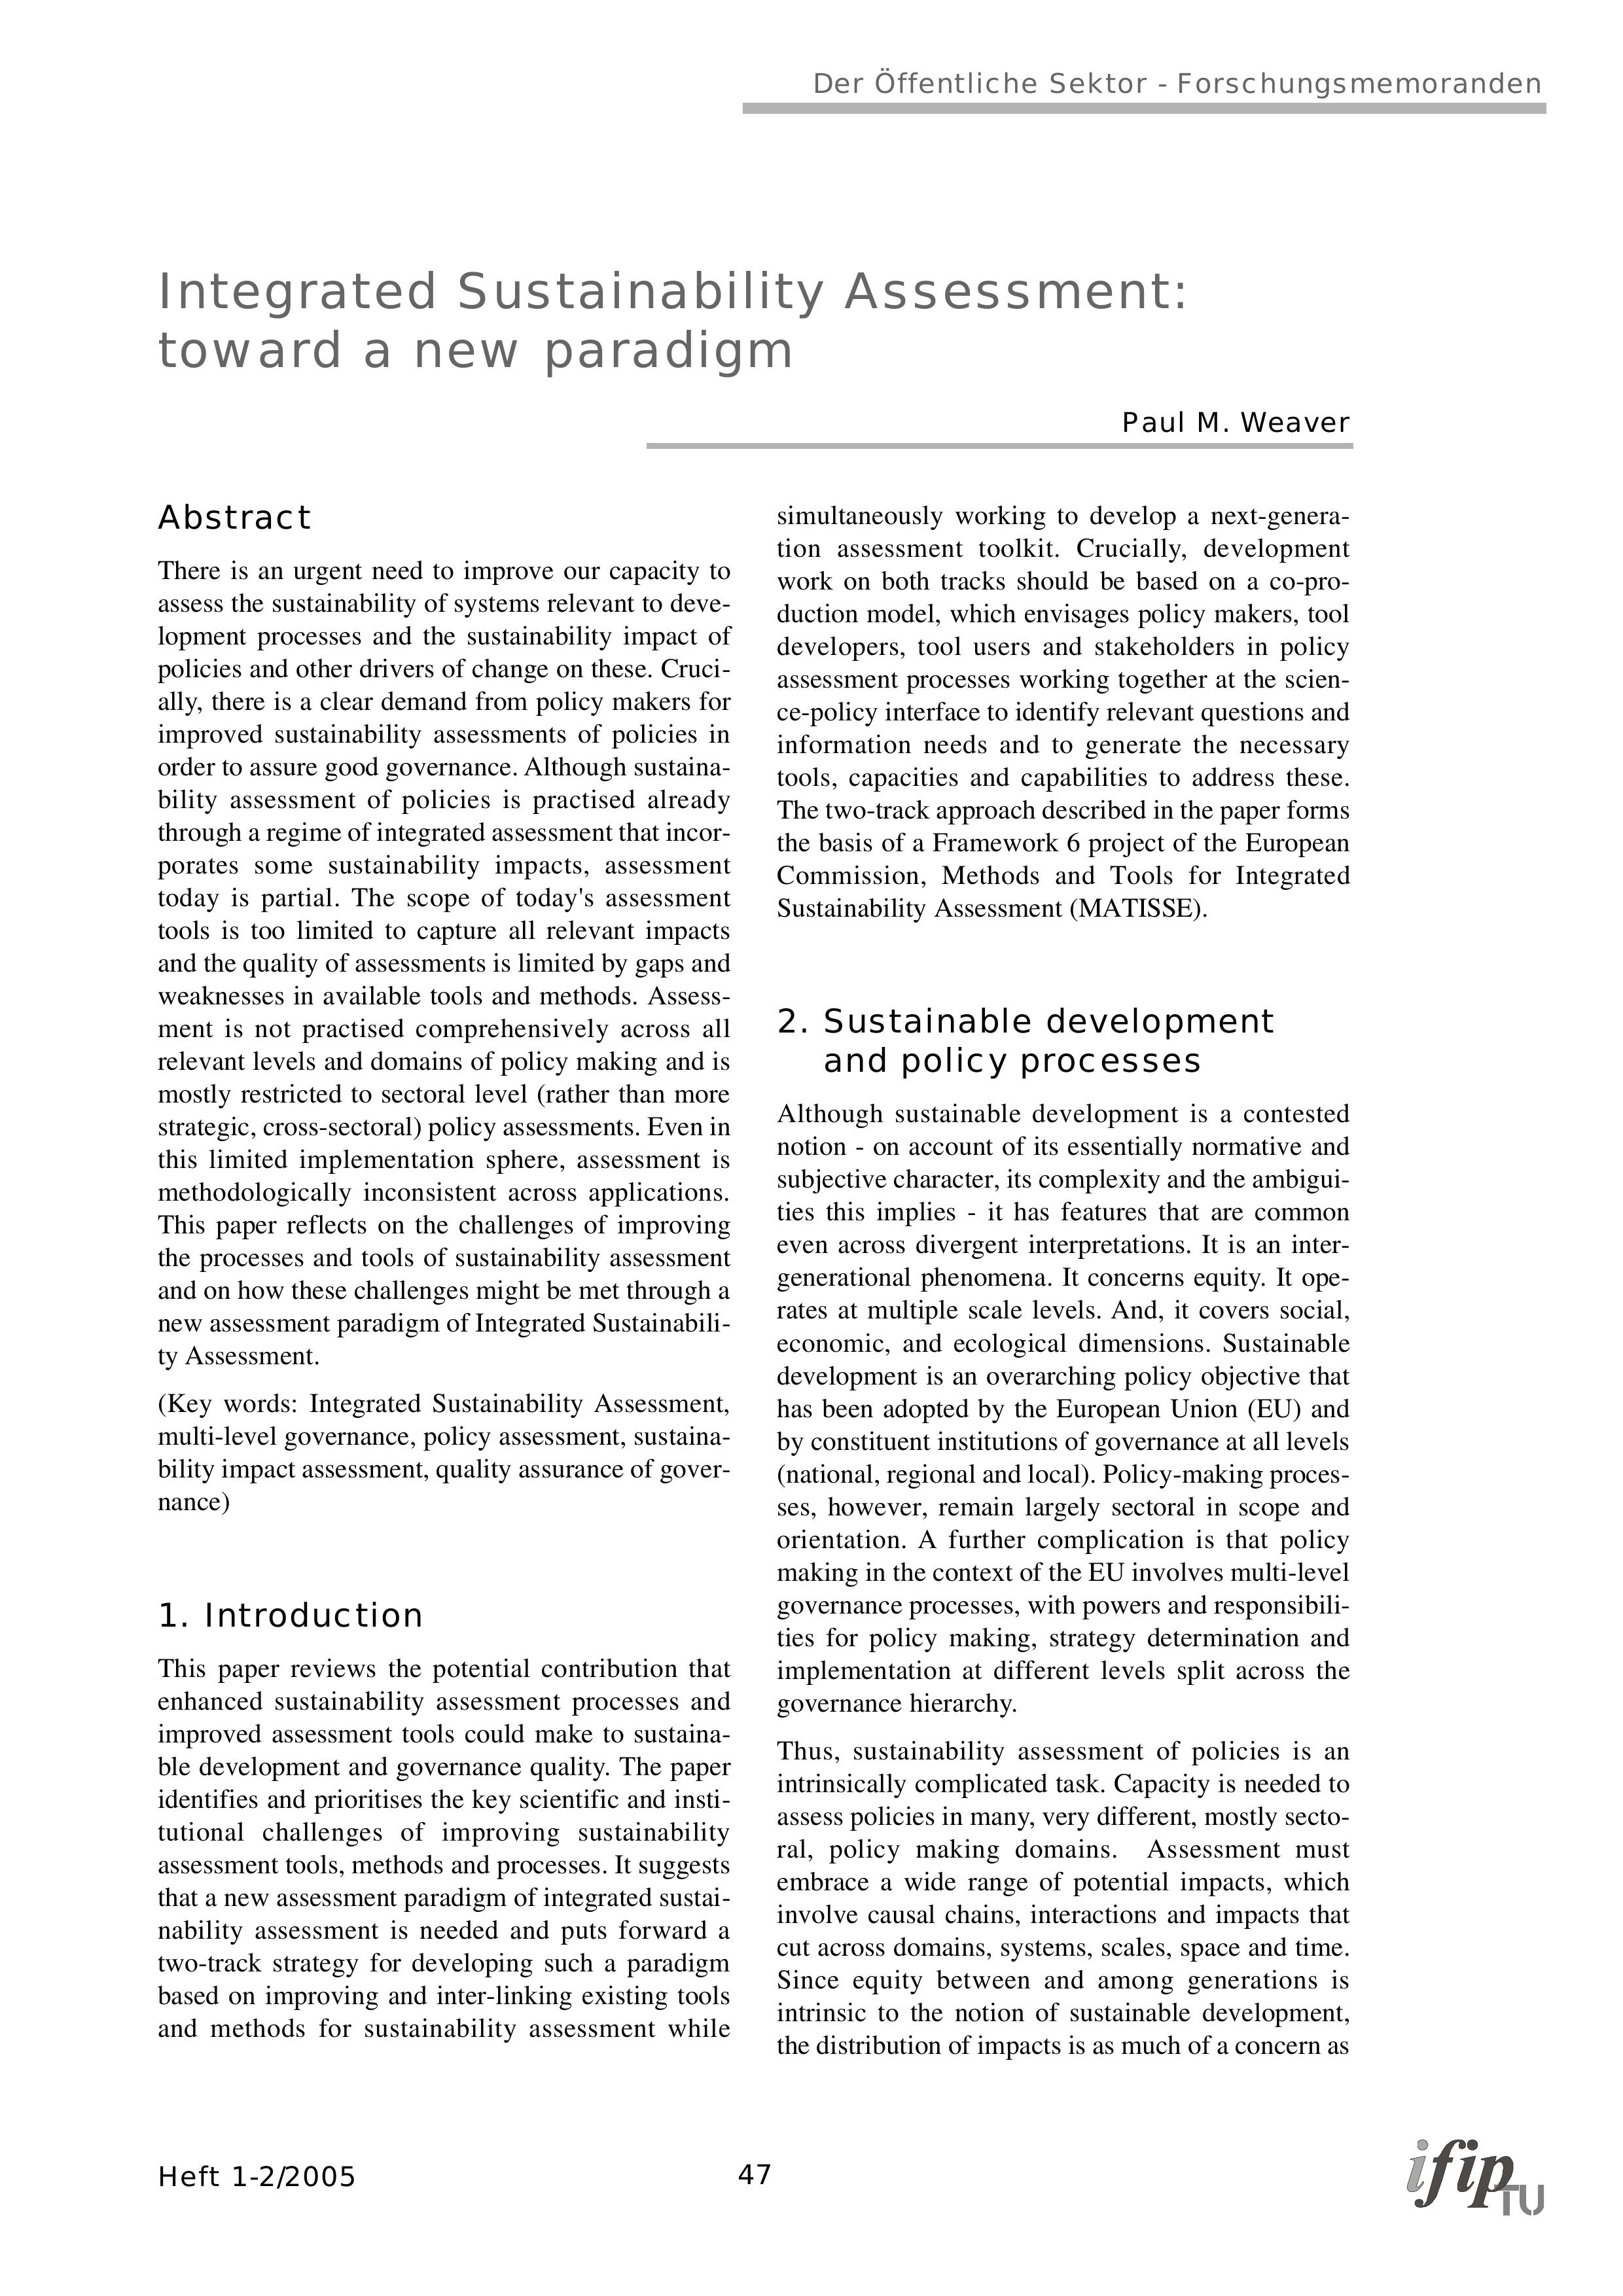 Integrated Sustainability Assessment: toward a new paradigm